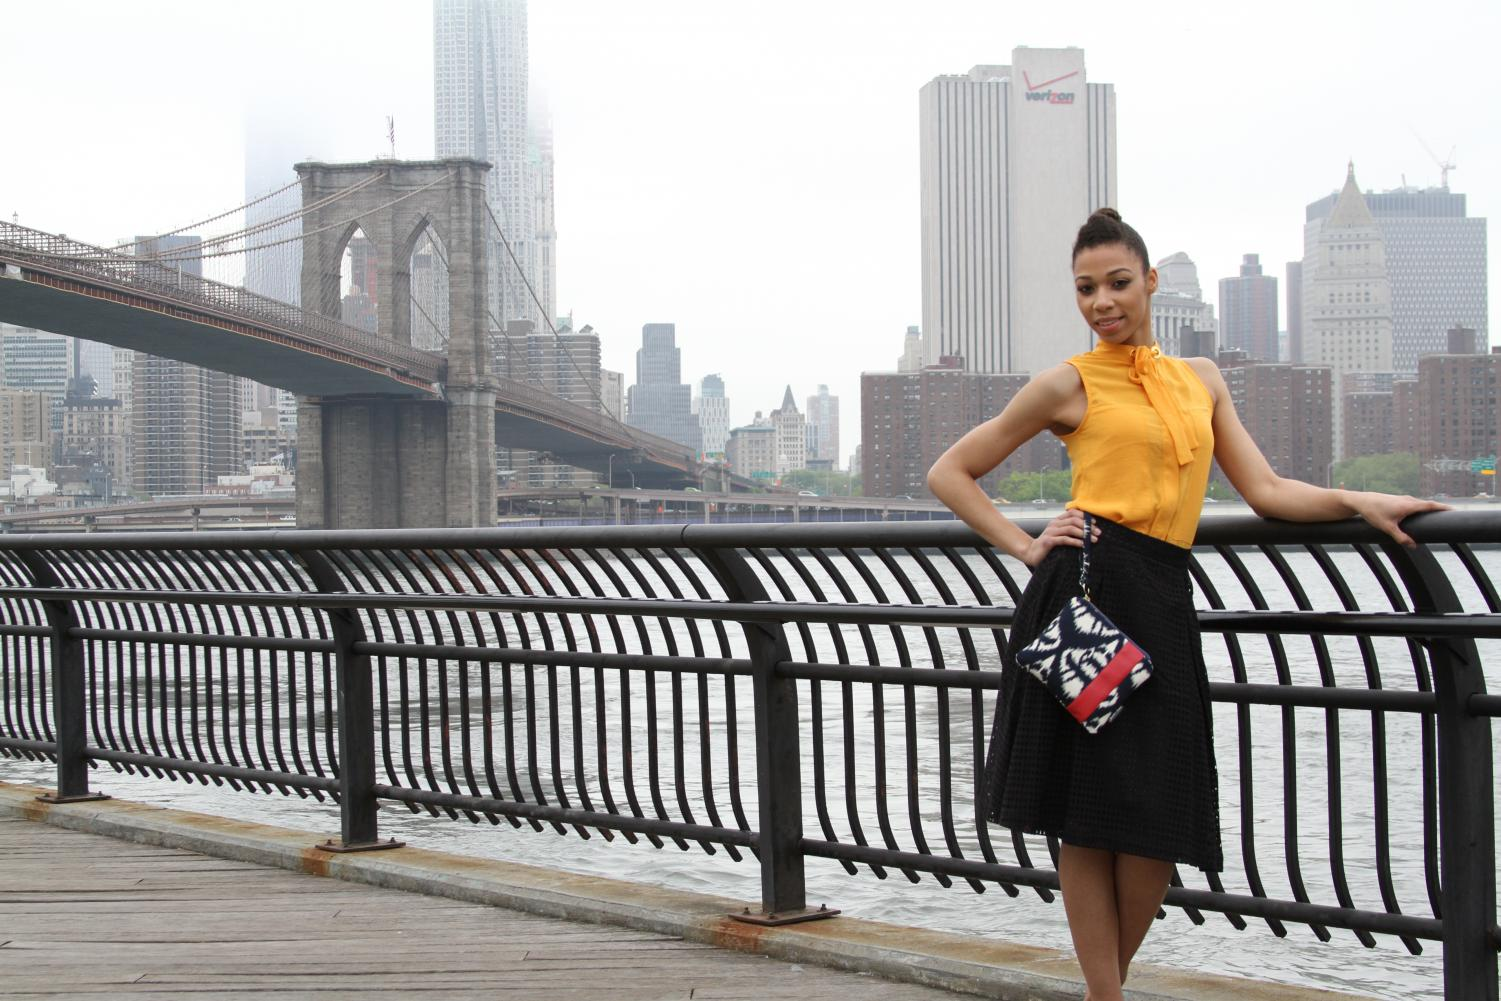 Janeica Hance poses with her original handbag near the Brooklyn Bridge in NYC. The Brookline alum works in management and runs her own business called J. Hance where she designs clutches.